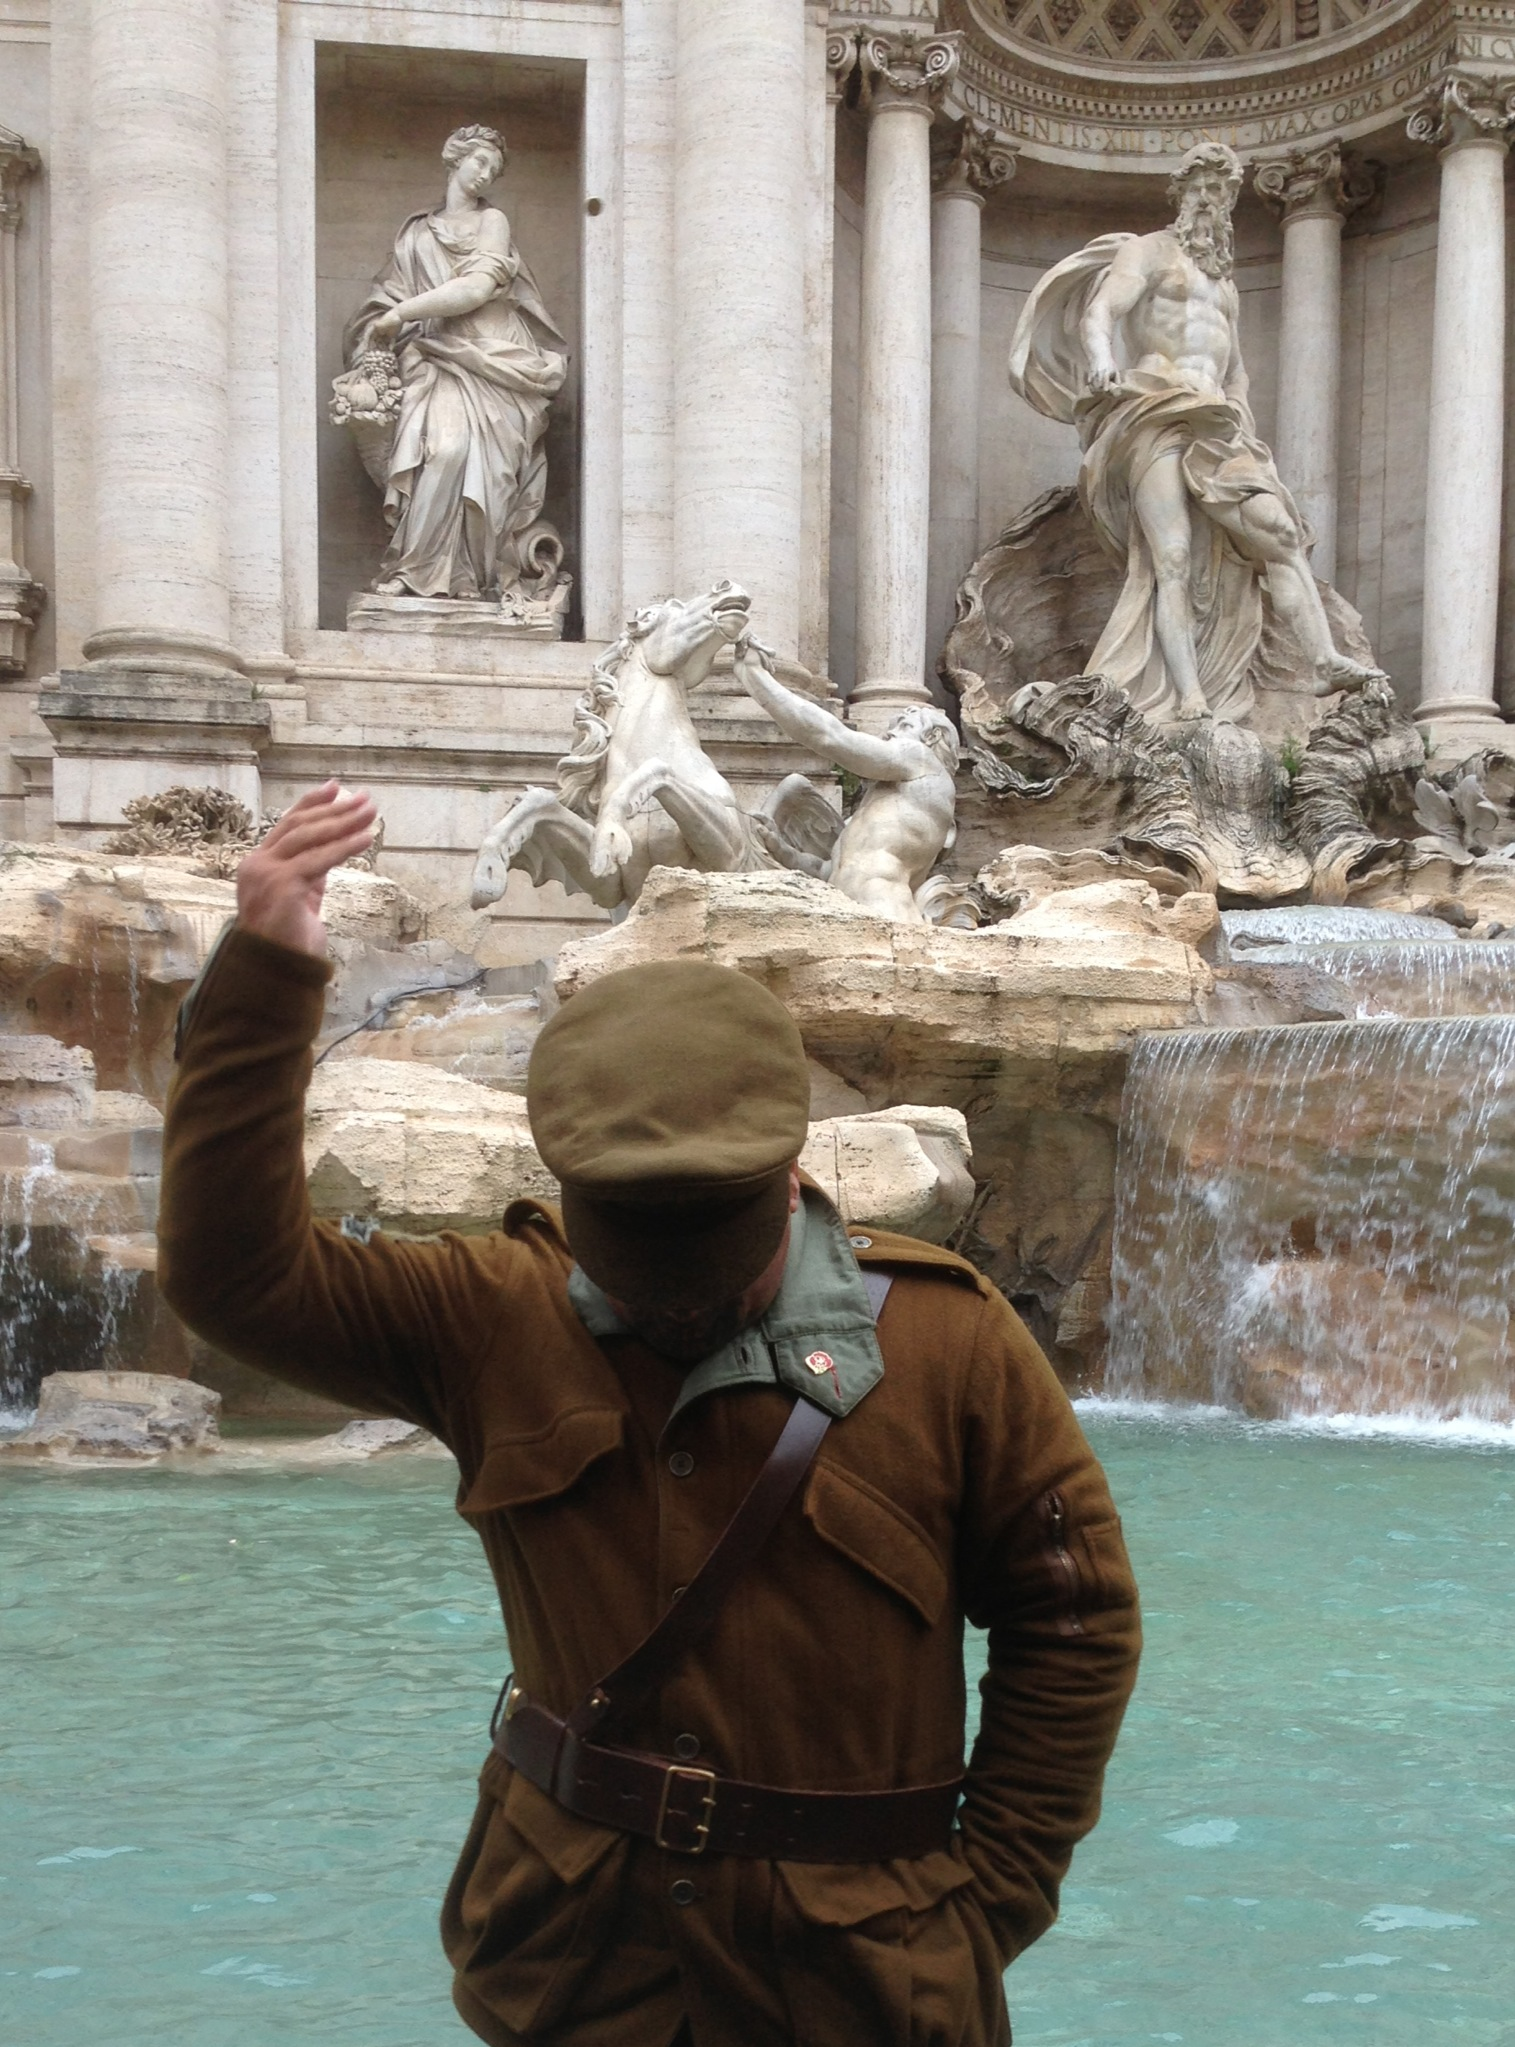 One for good luck, Trevi Fountain, Rome